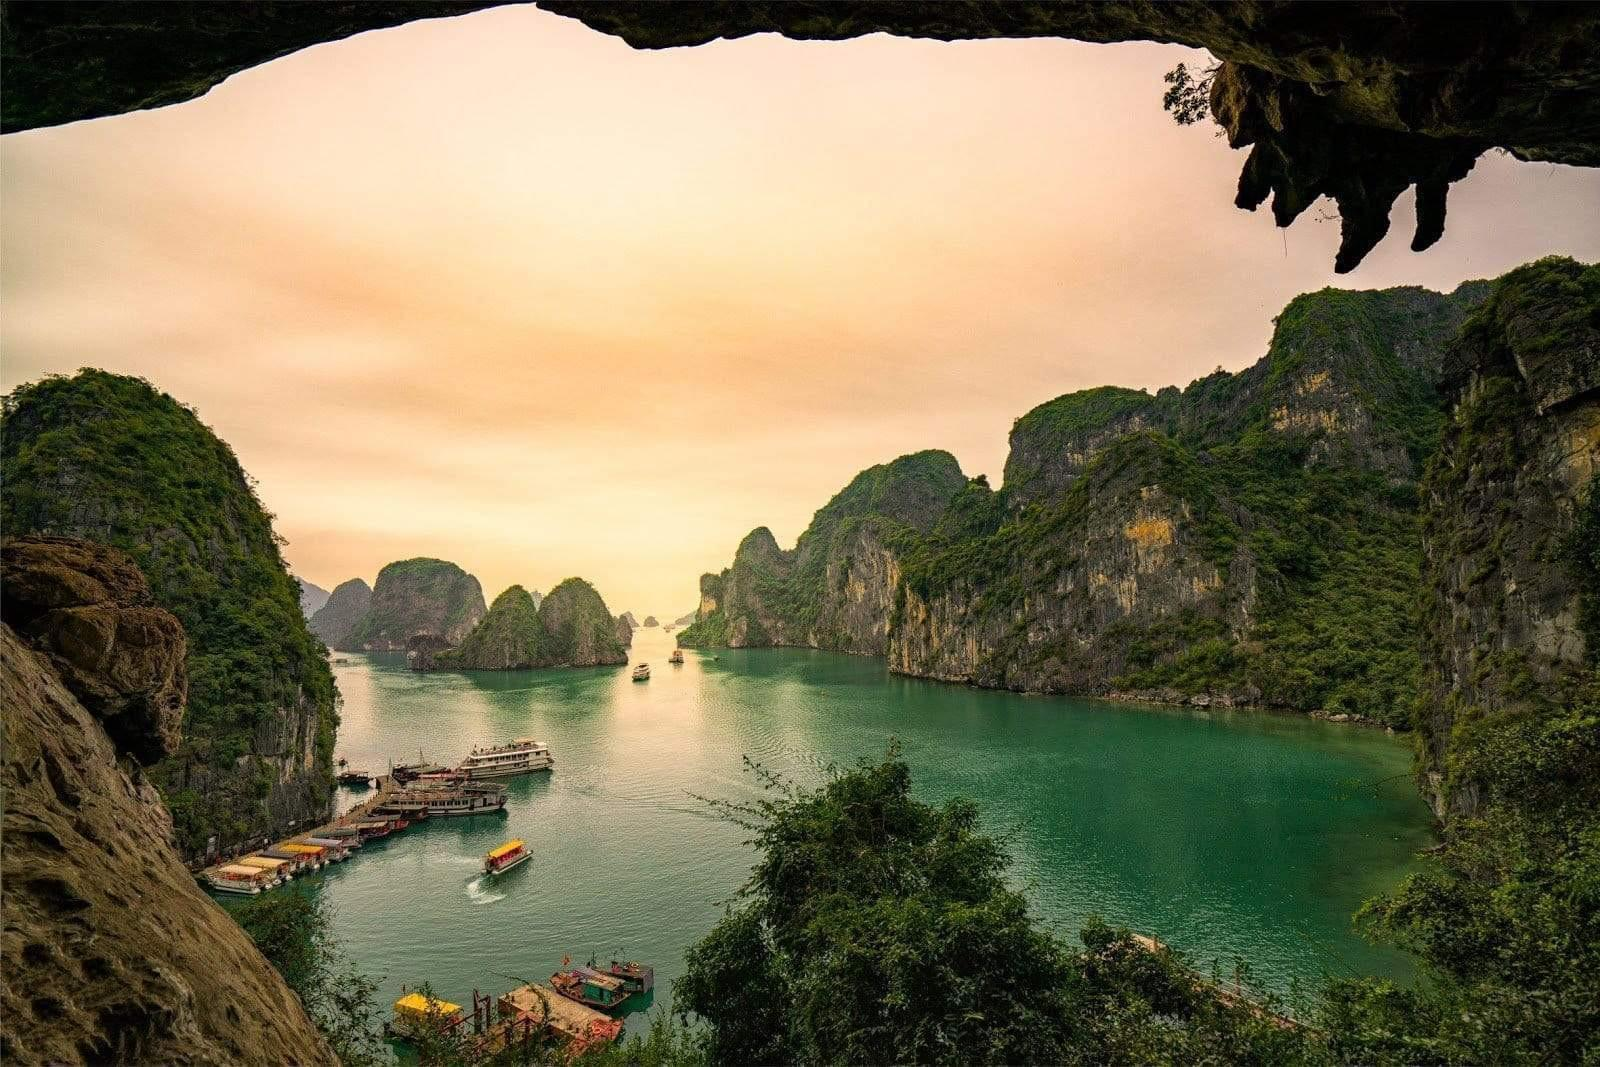 Everything you need to know about Halong Bay trip from Hanoi